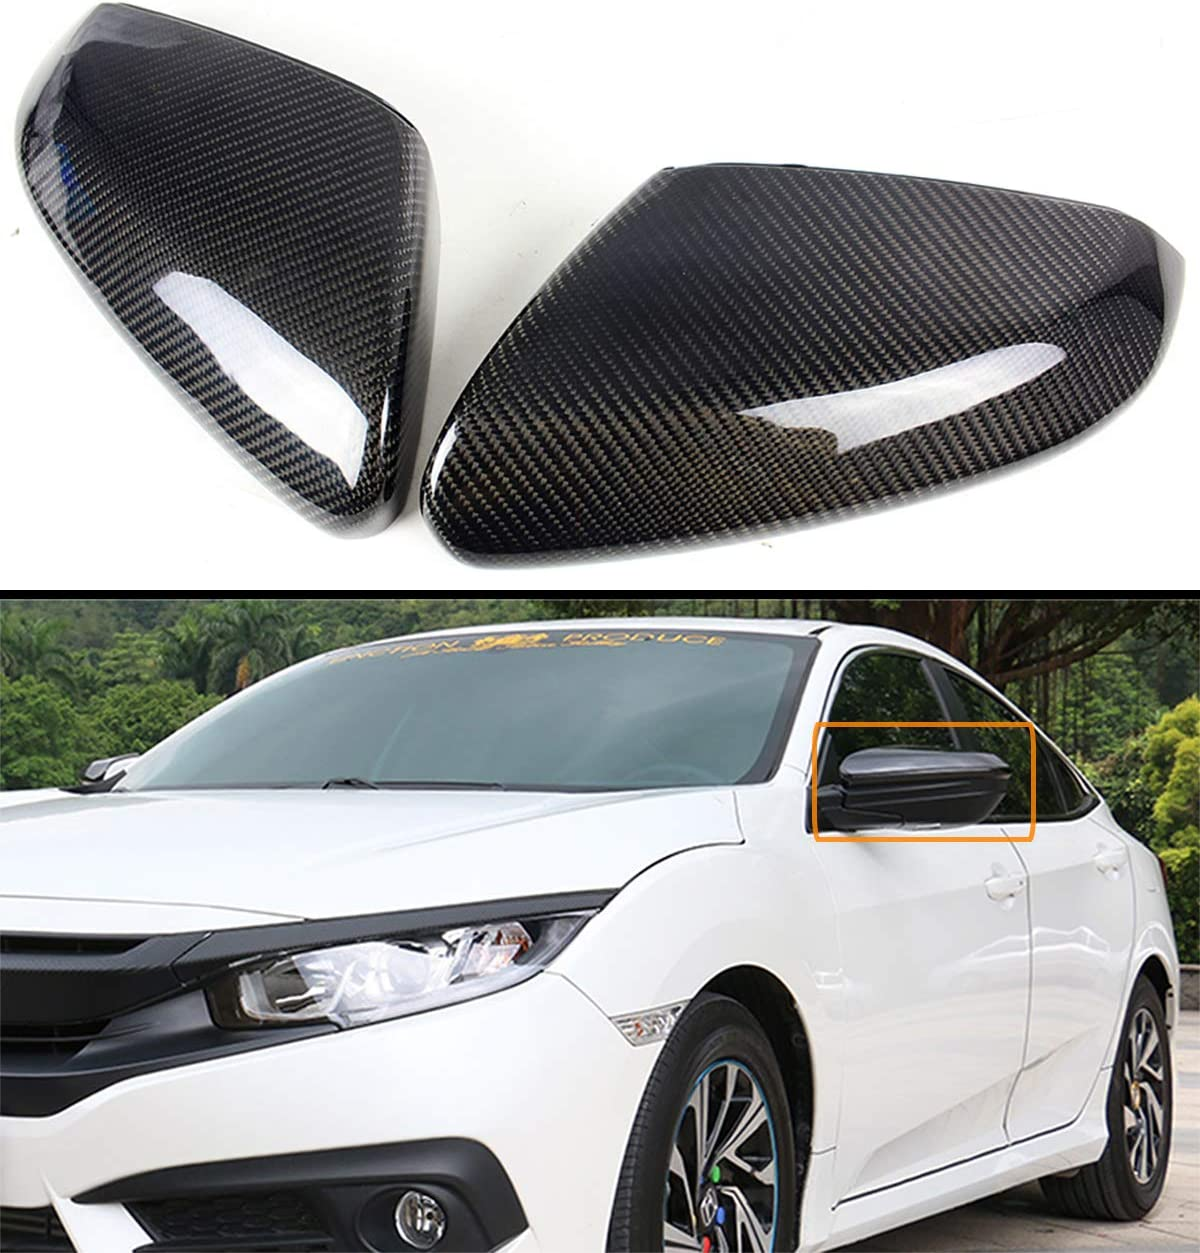 1 Pair Side Mirror Covers Accessories For Honda Civic 10th Gen 2016-2019 Useful